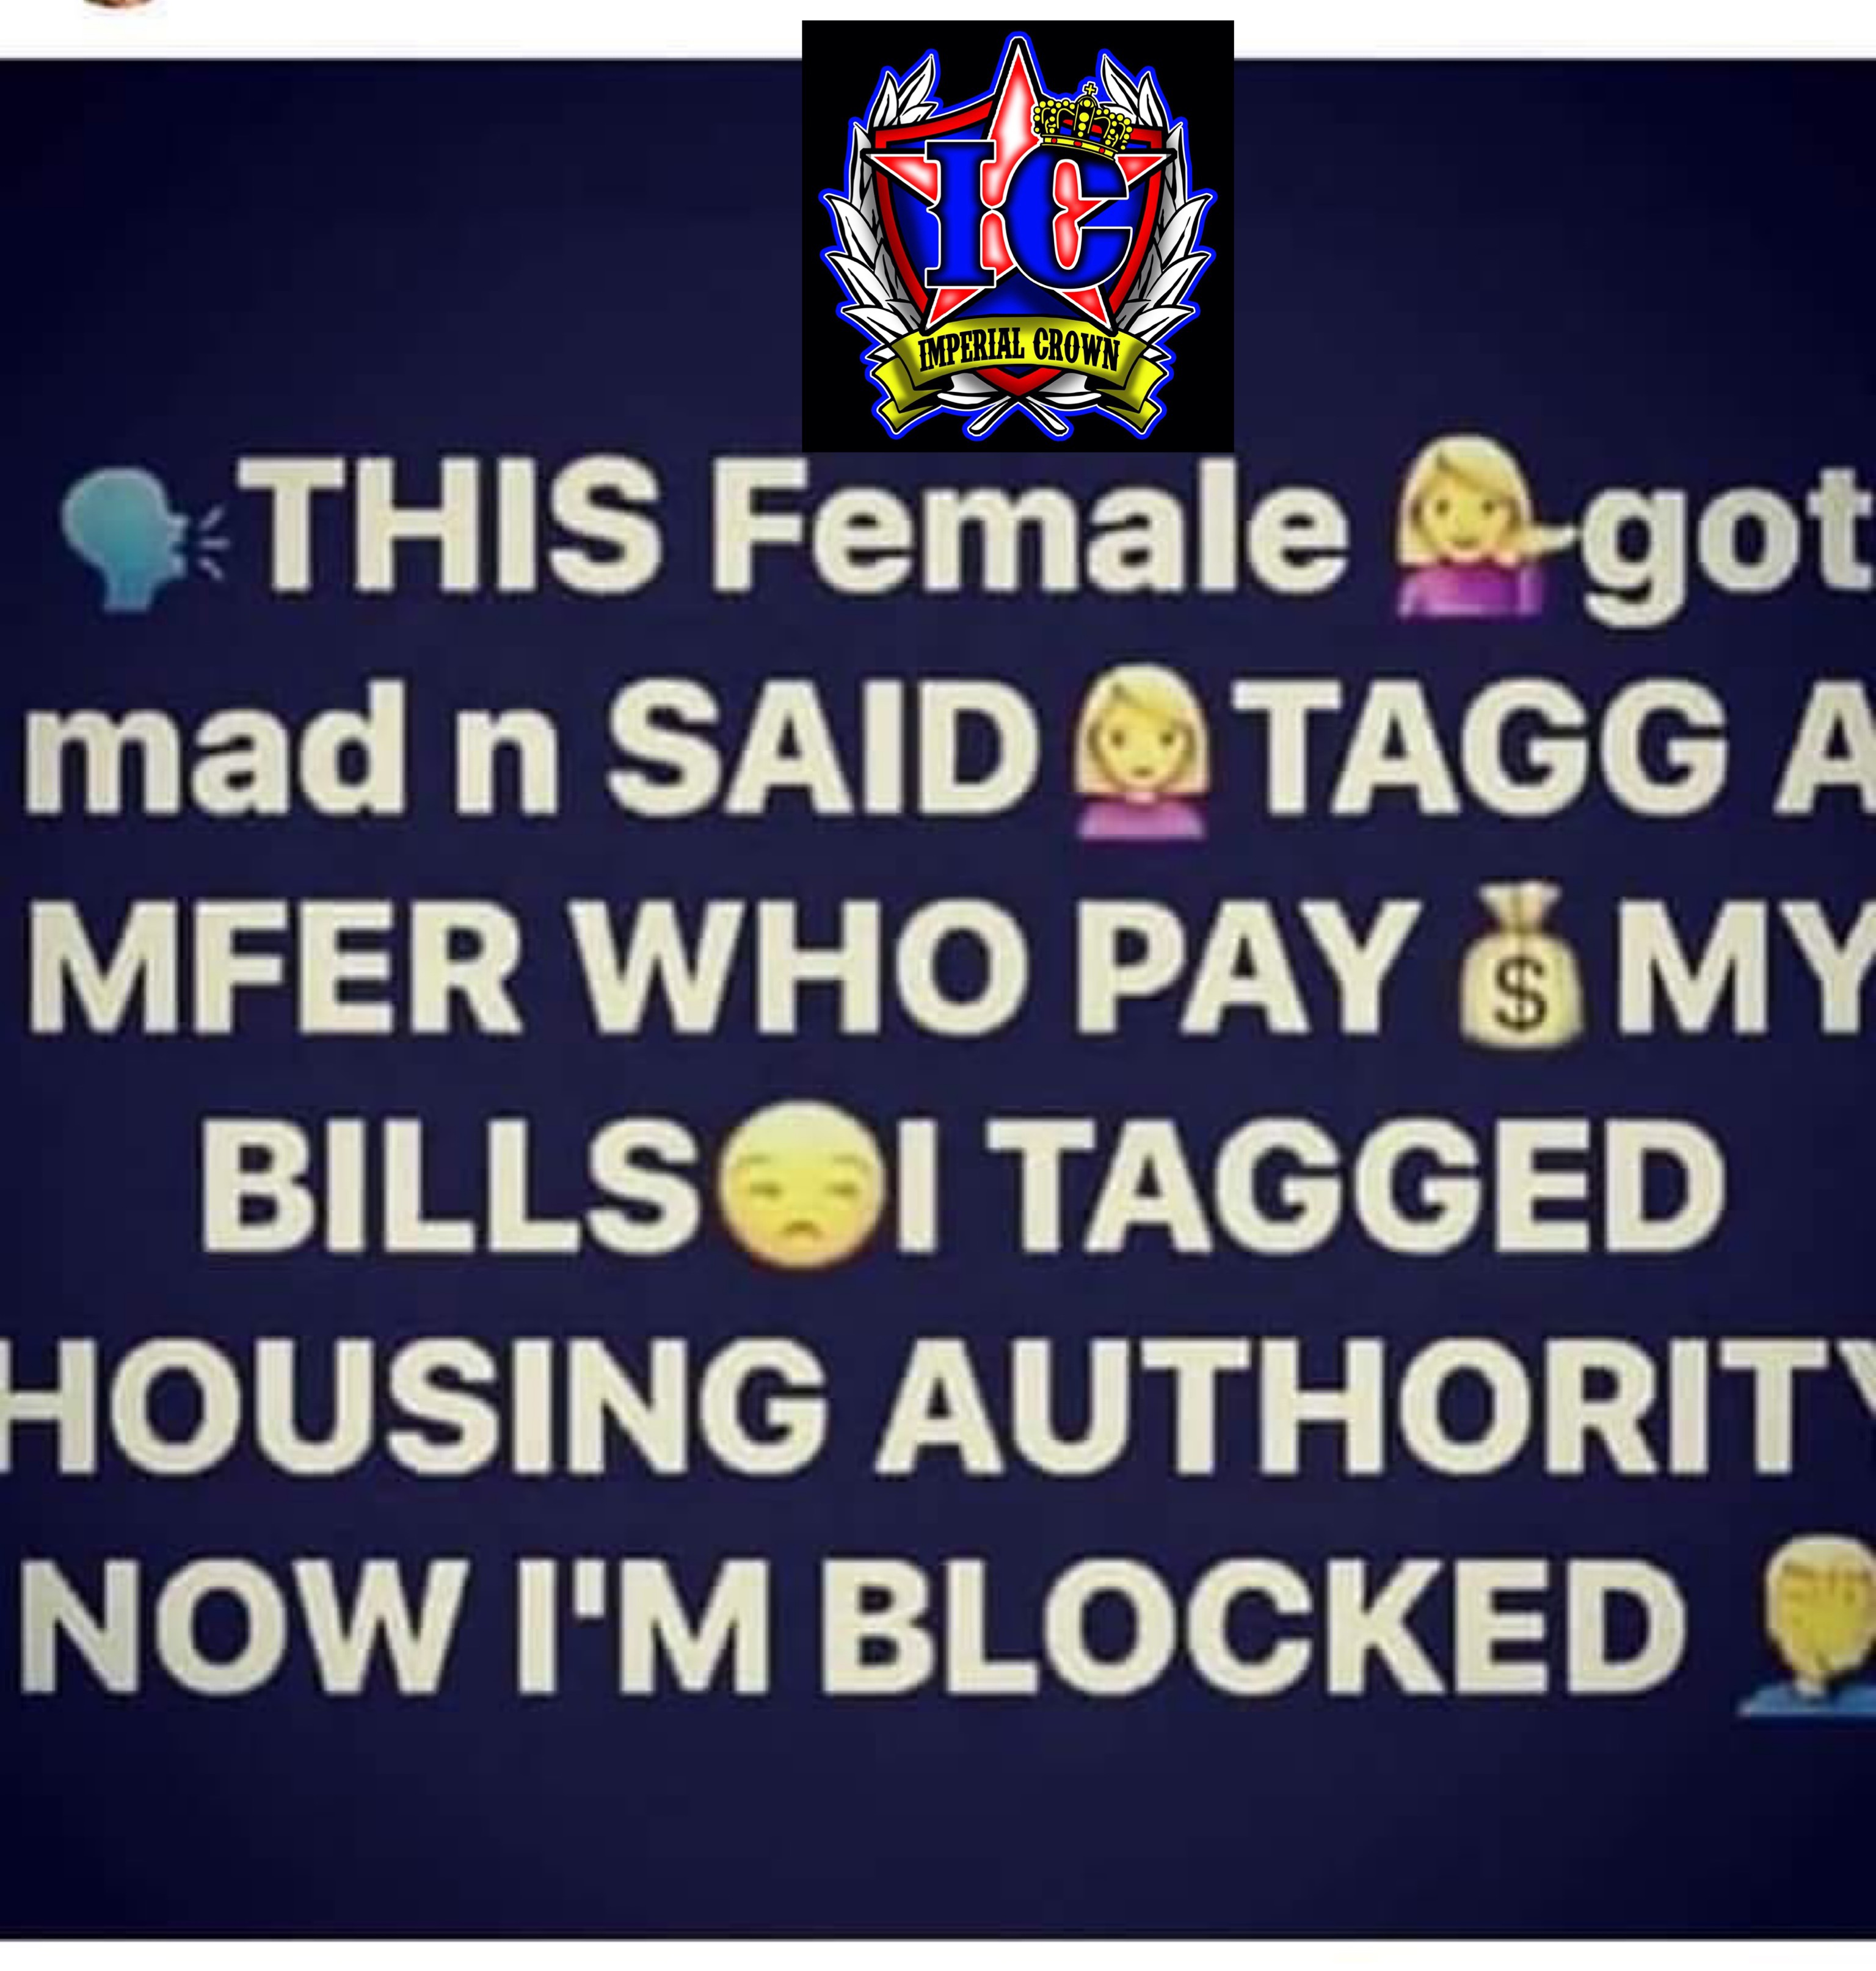 This female got mad n said tag a mfeer who Pay my bills